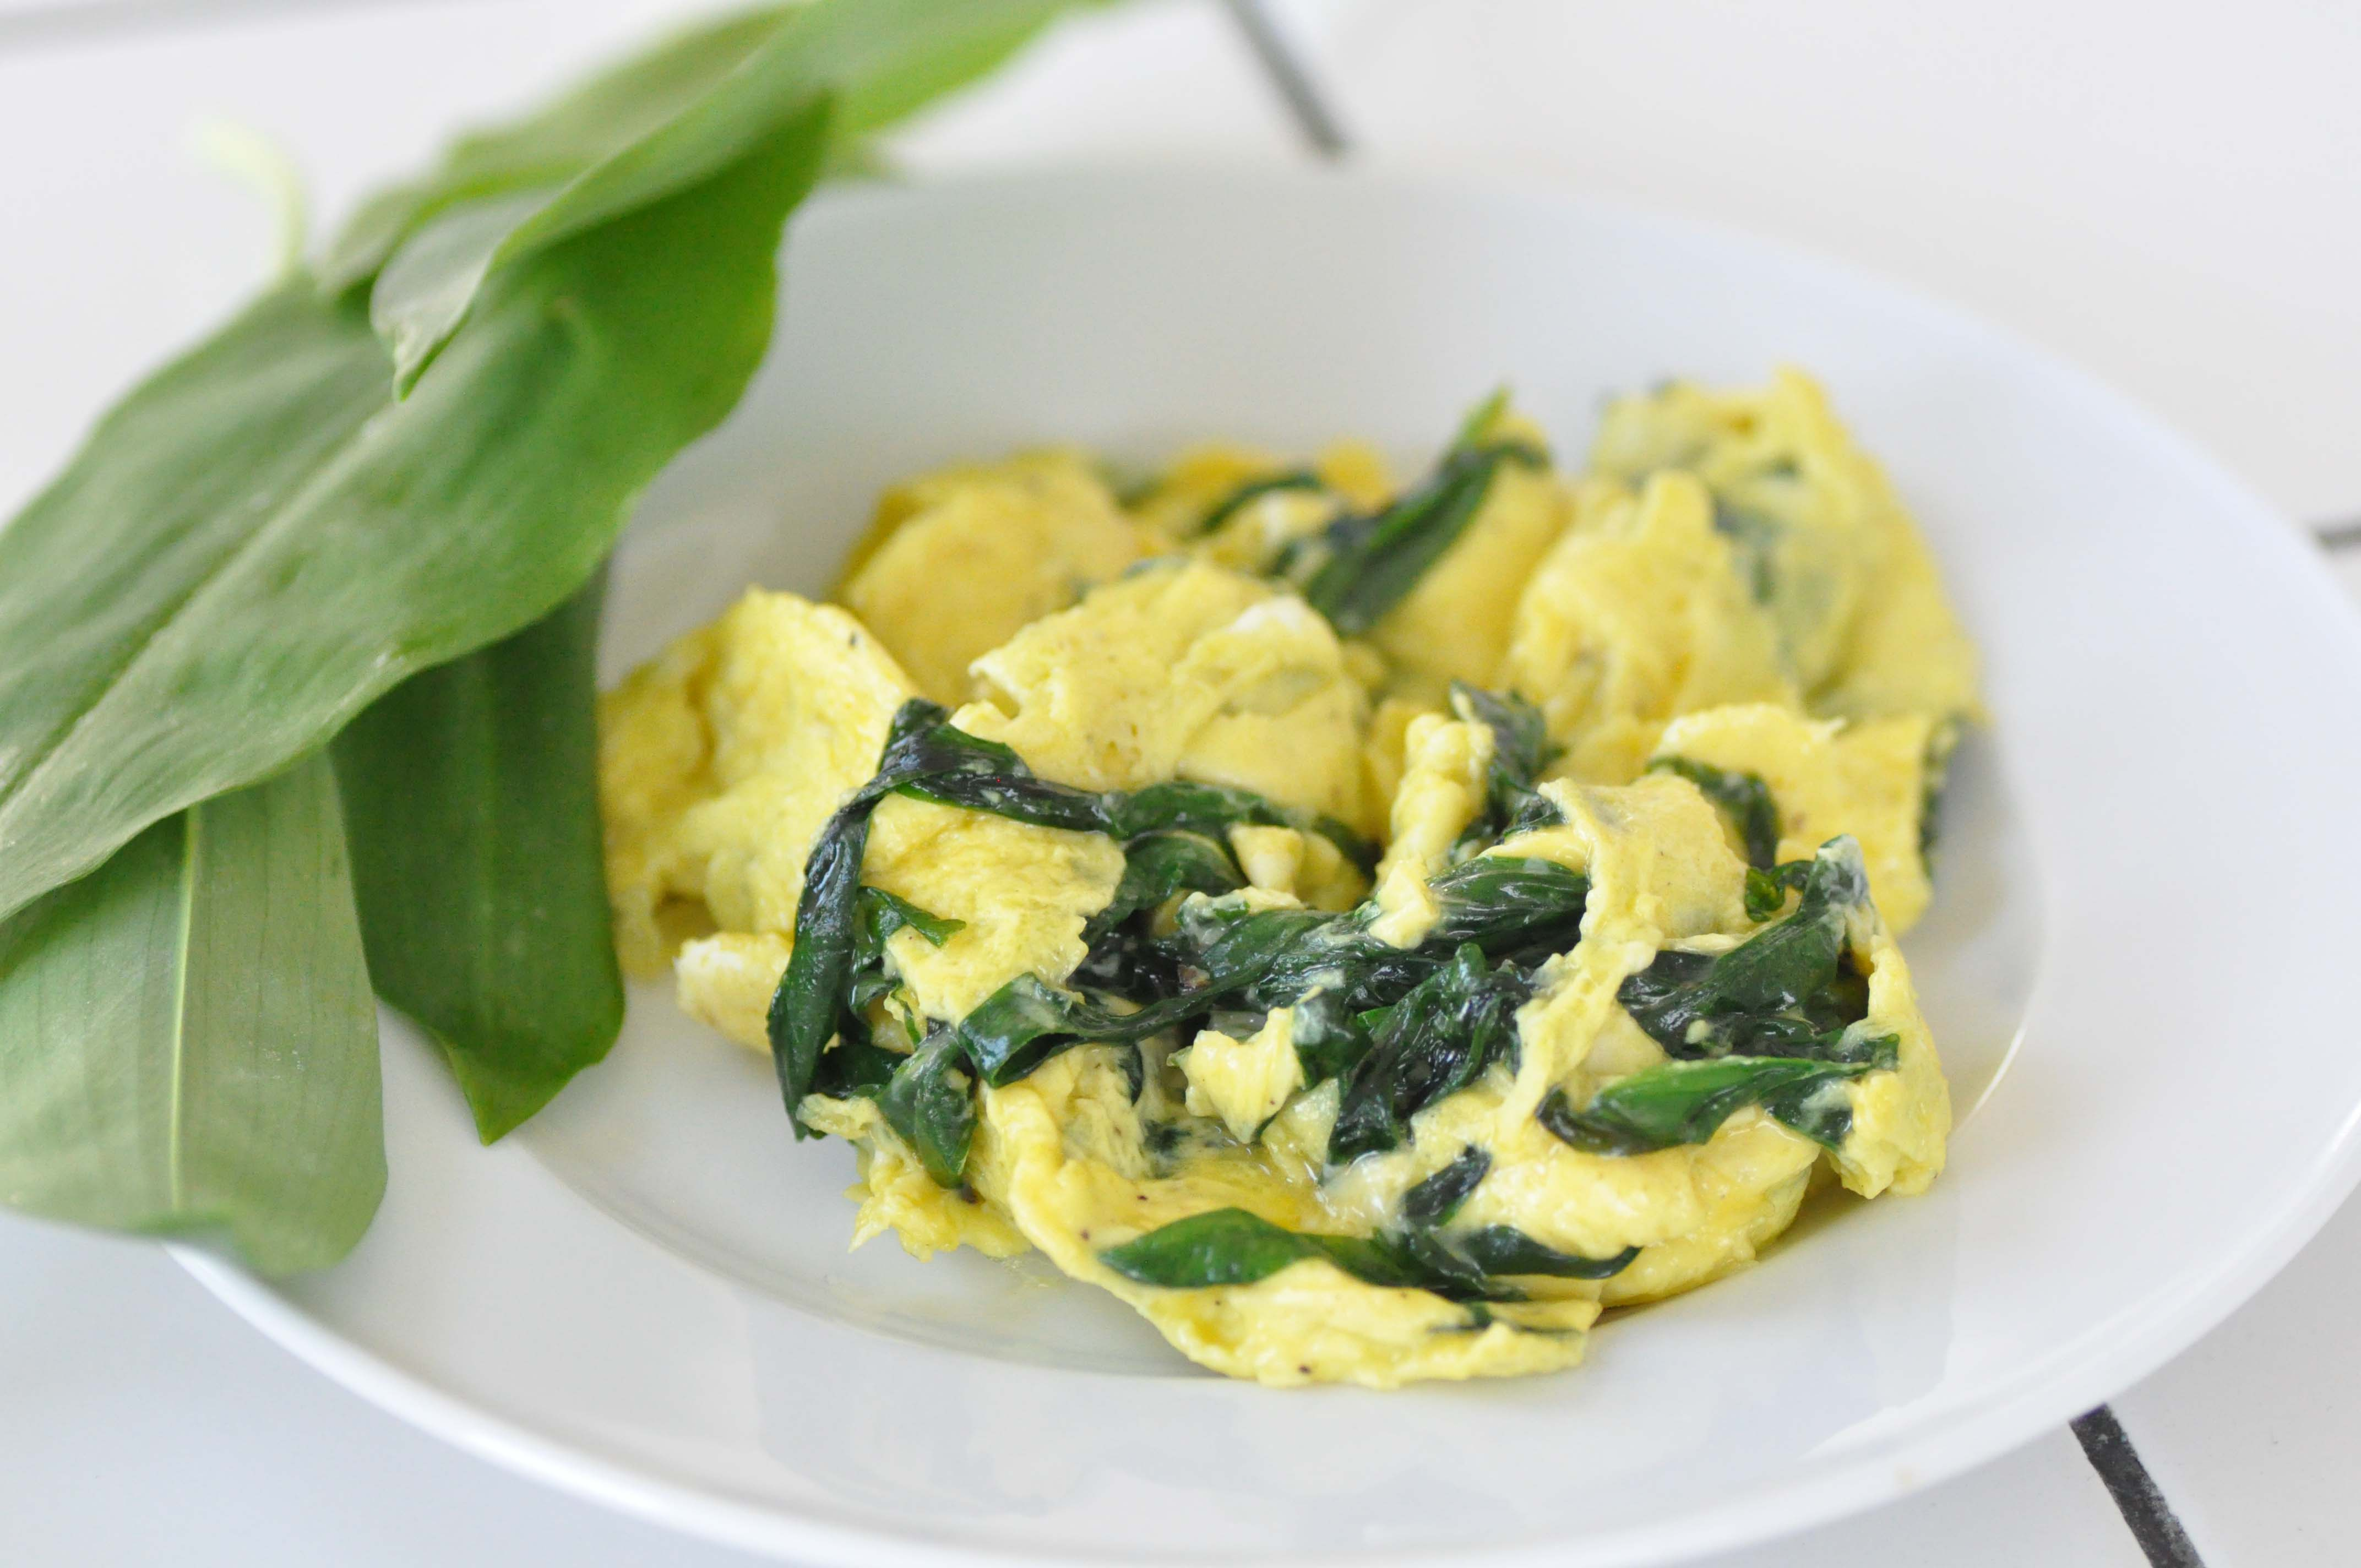 scrambeled egg with bears garlic_bearbeitet-1